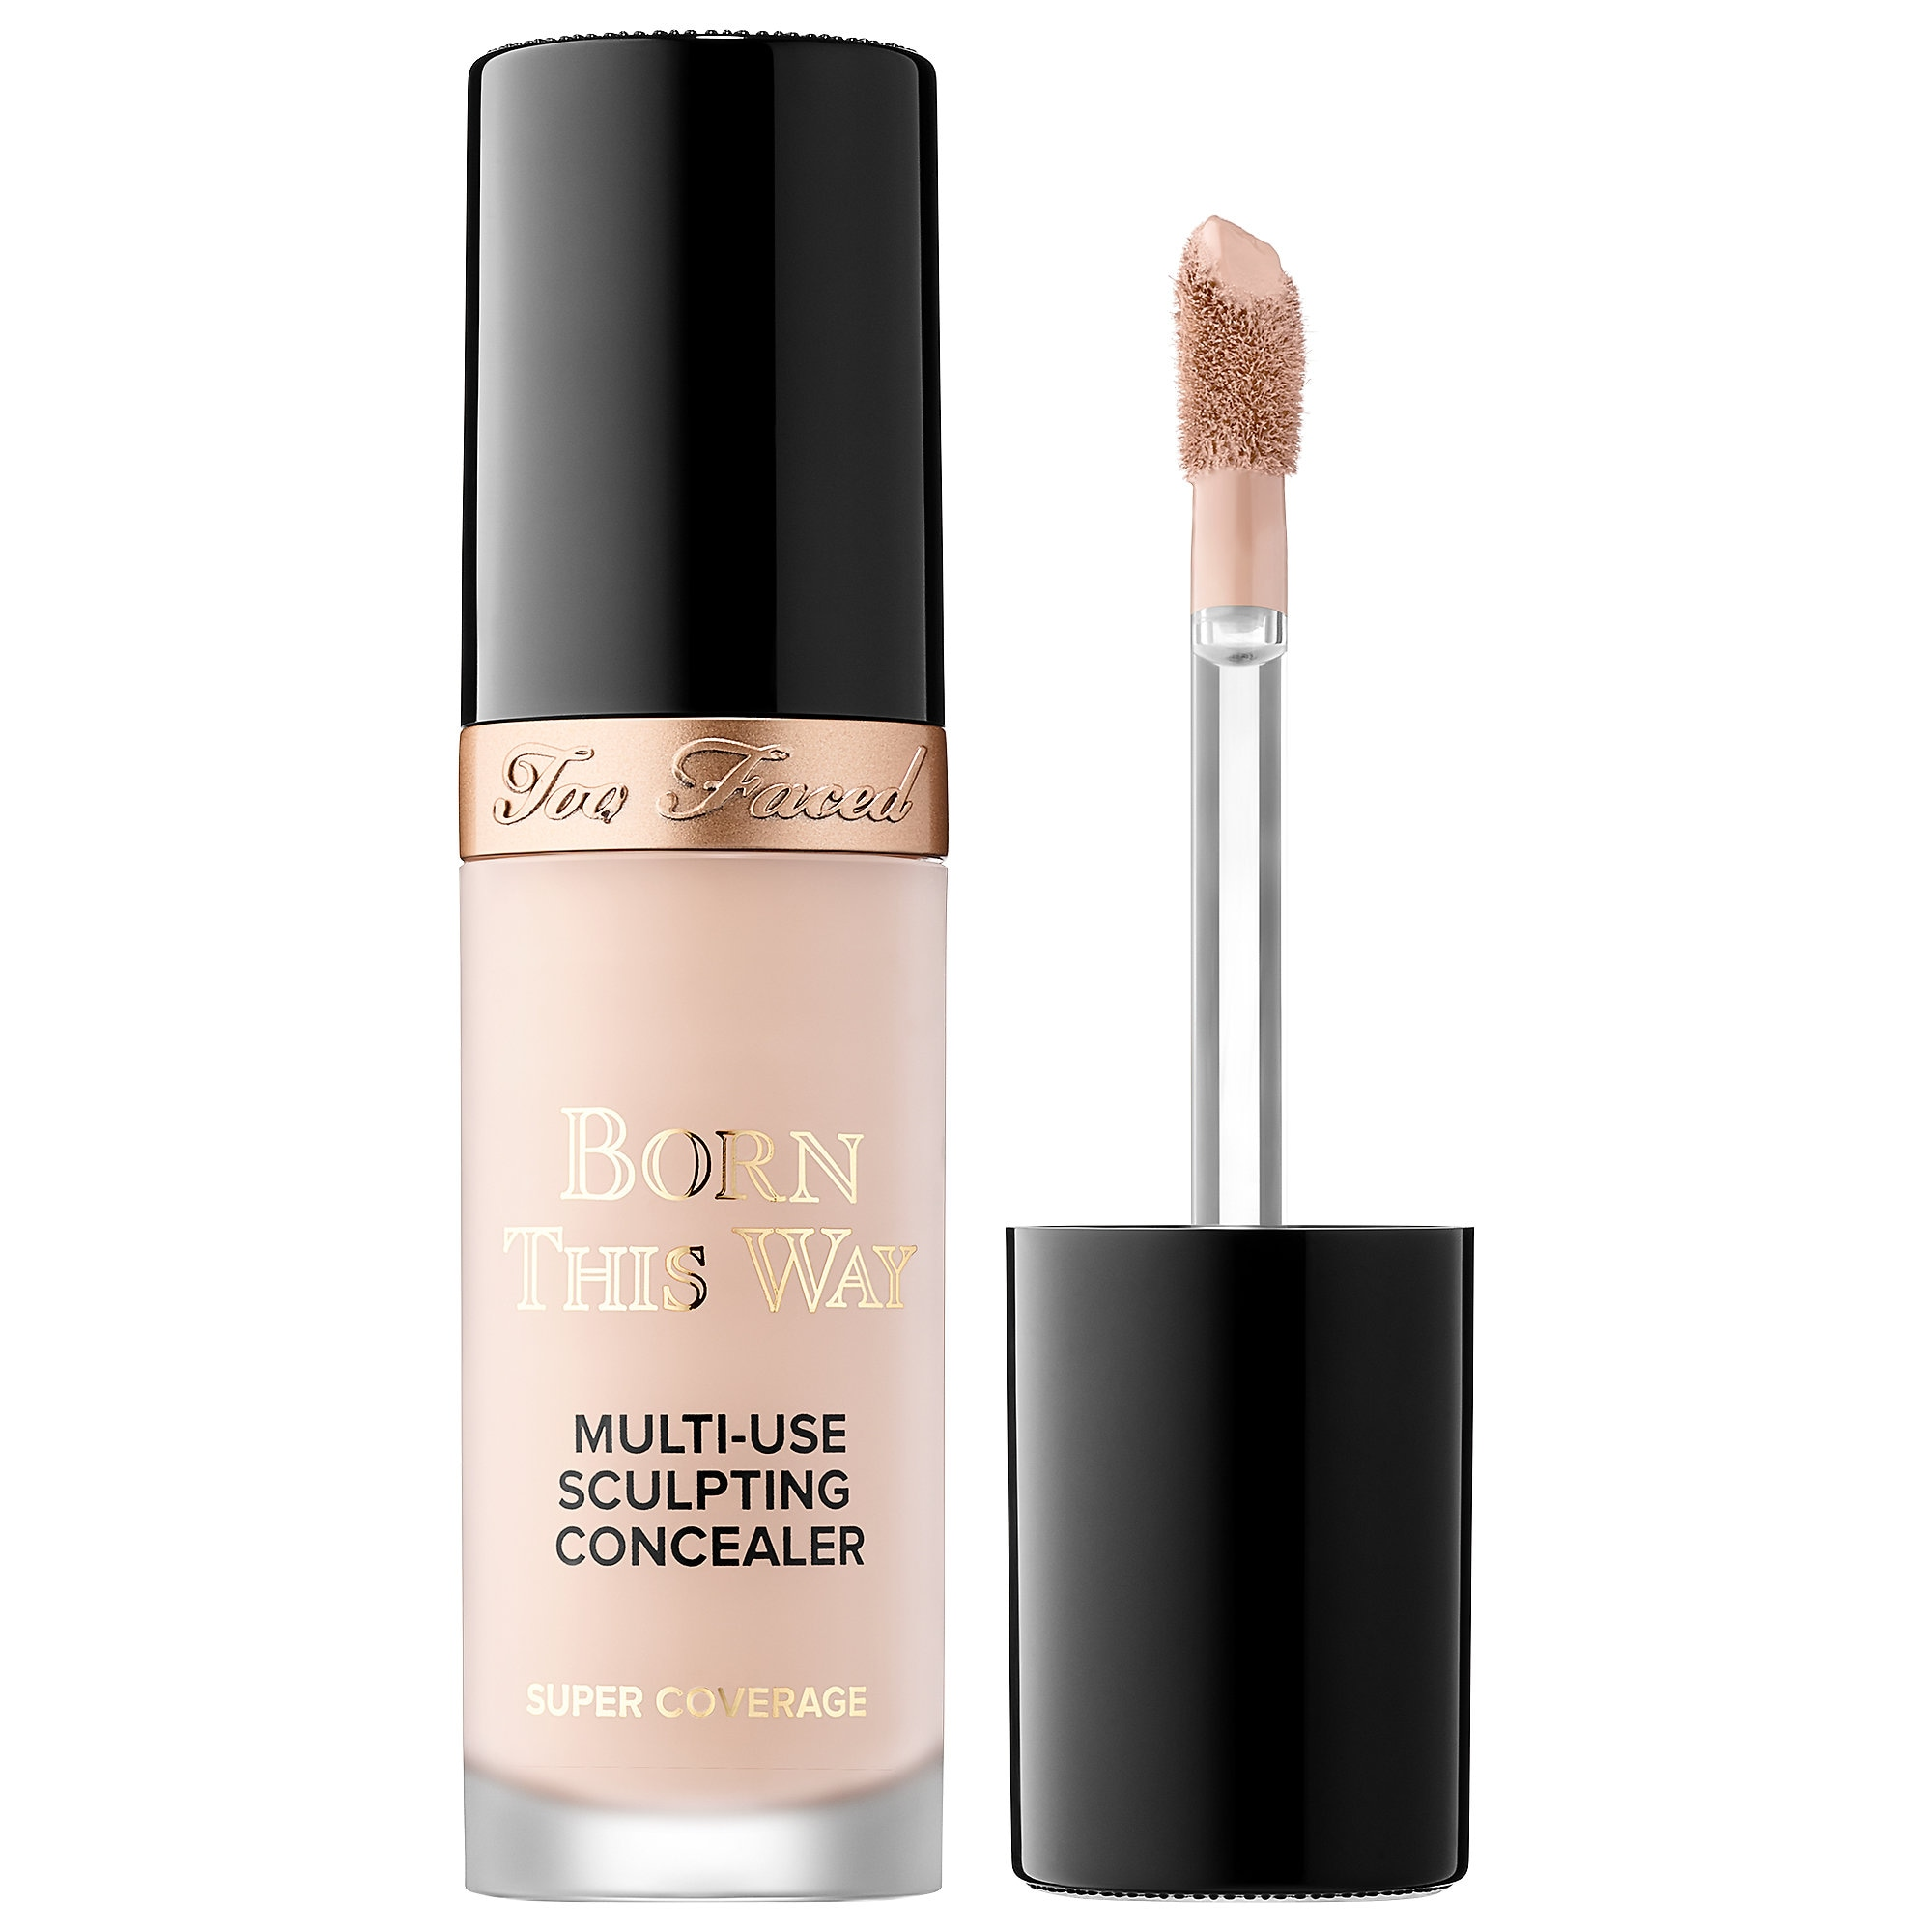 Toofaced - Born This Way Super Coverage Multi-Use Concealer